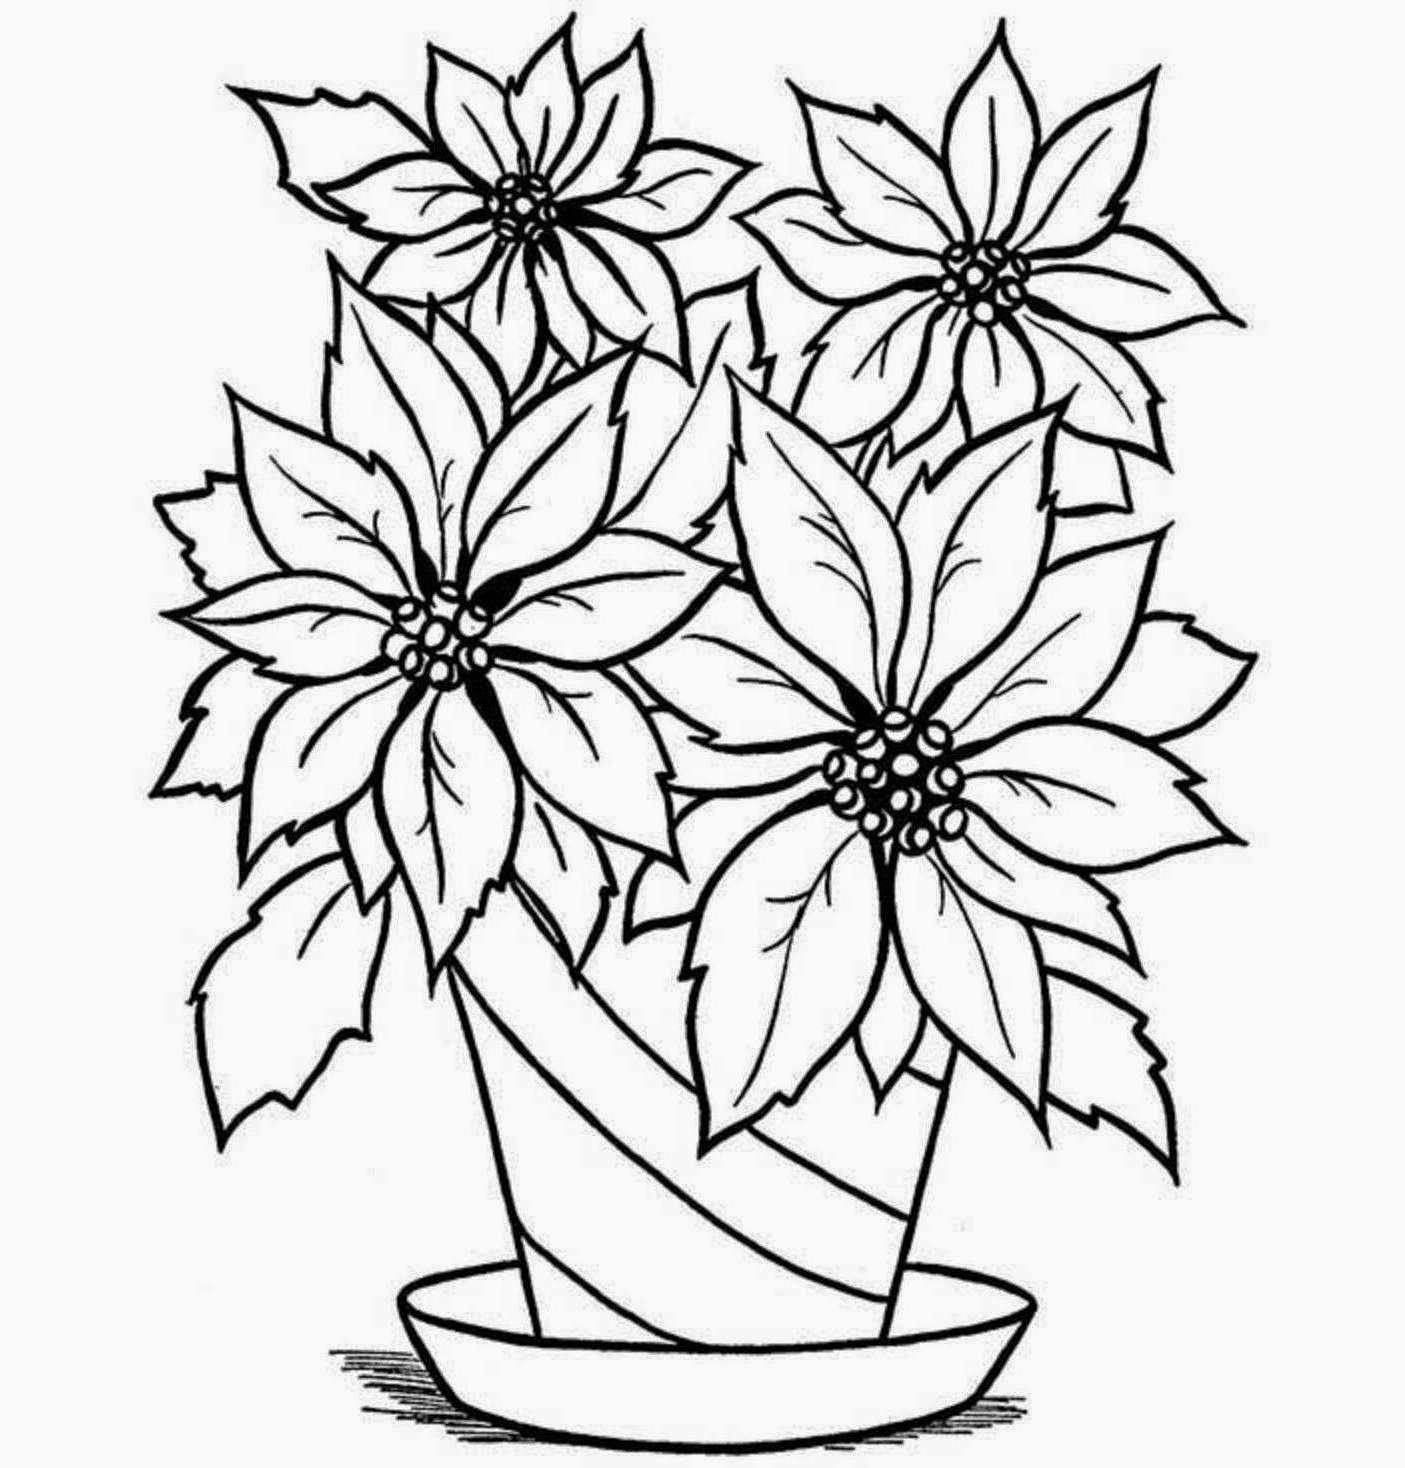 1405x1468 Vase Drawing For Kids Choice Image